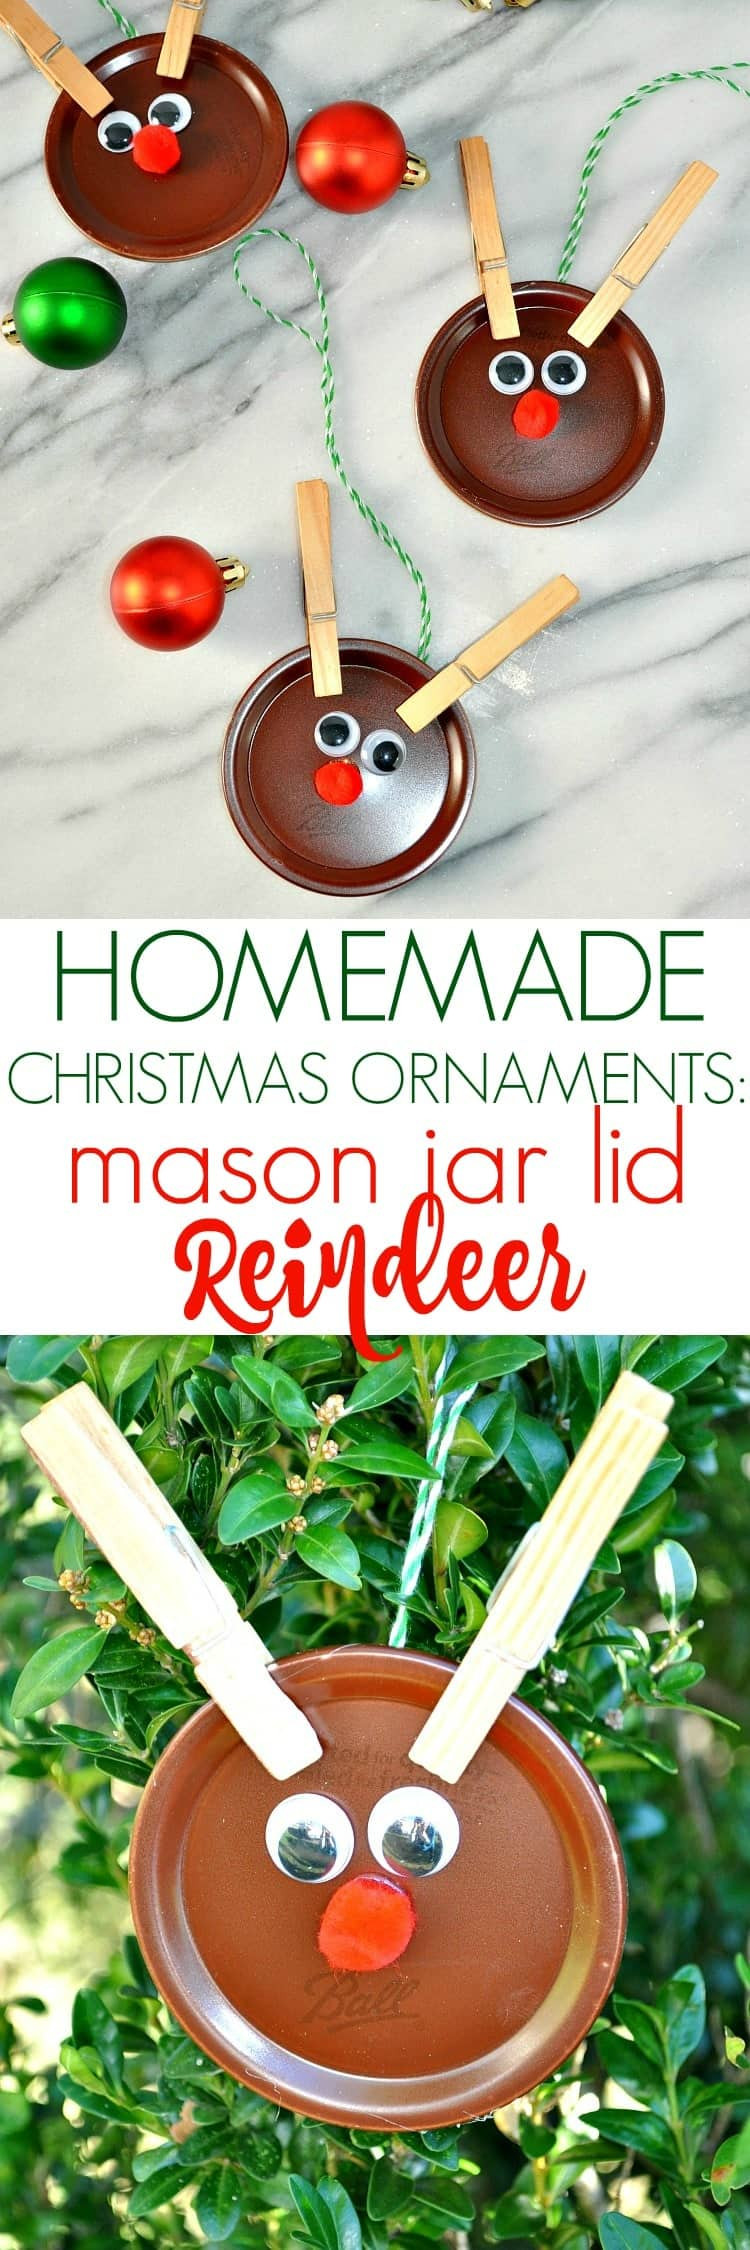 Best ideas about Easy Christmas Craft Gift . Save or Pin Homemade Christmas Ornaments Mason Jar Lid Reindeer The Now.